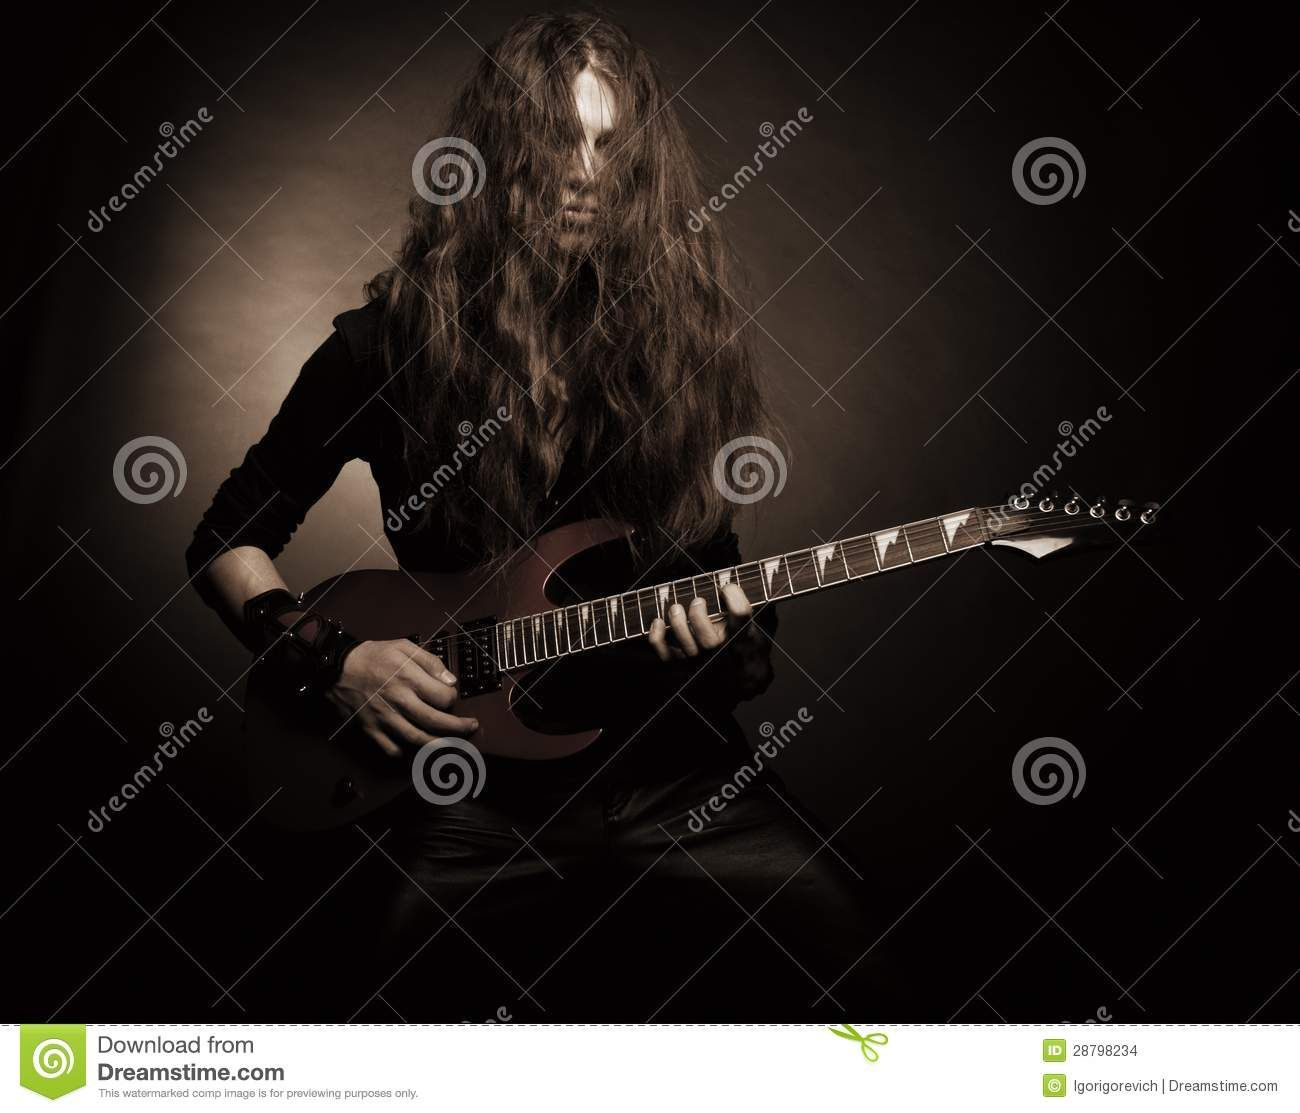 guitarist pictures - Google Search